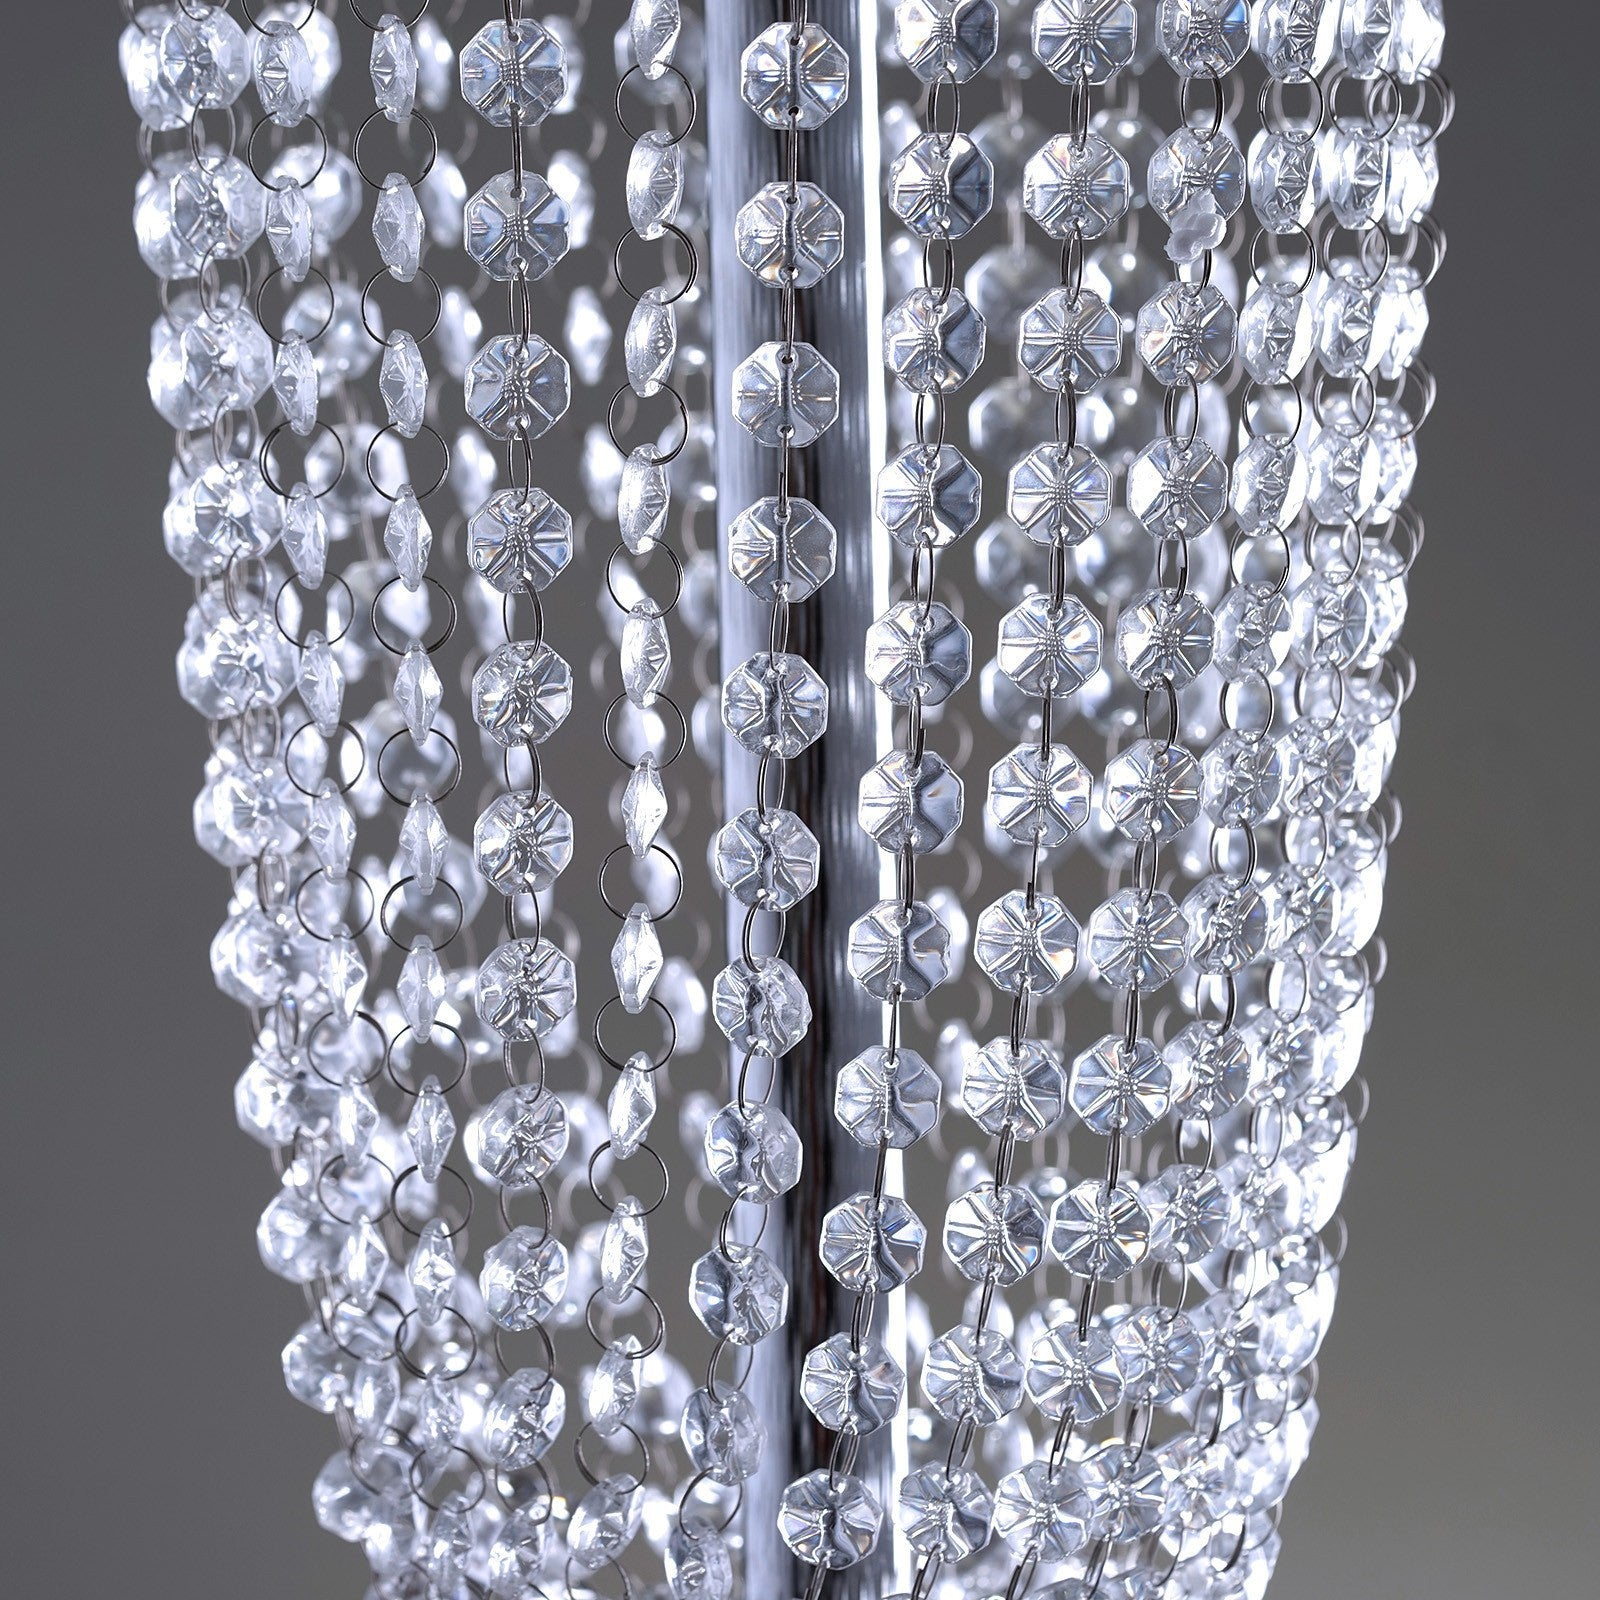 Maybelline exotic designer crystal garland chandelier wedding exotic designer crystal garland chandelier wedding centerpiece 32 tall arubaitofo Image collections